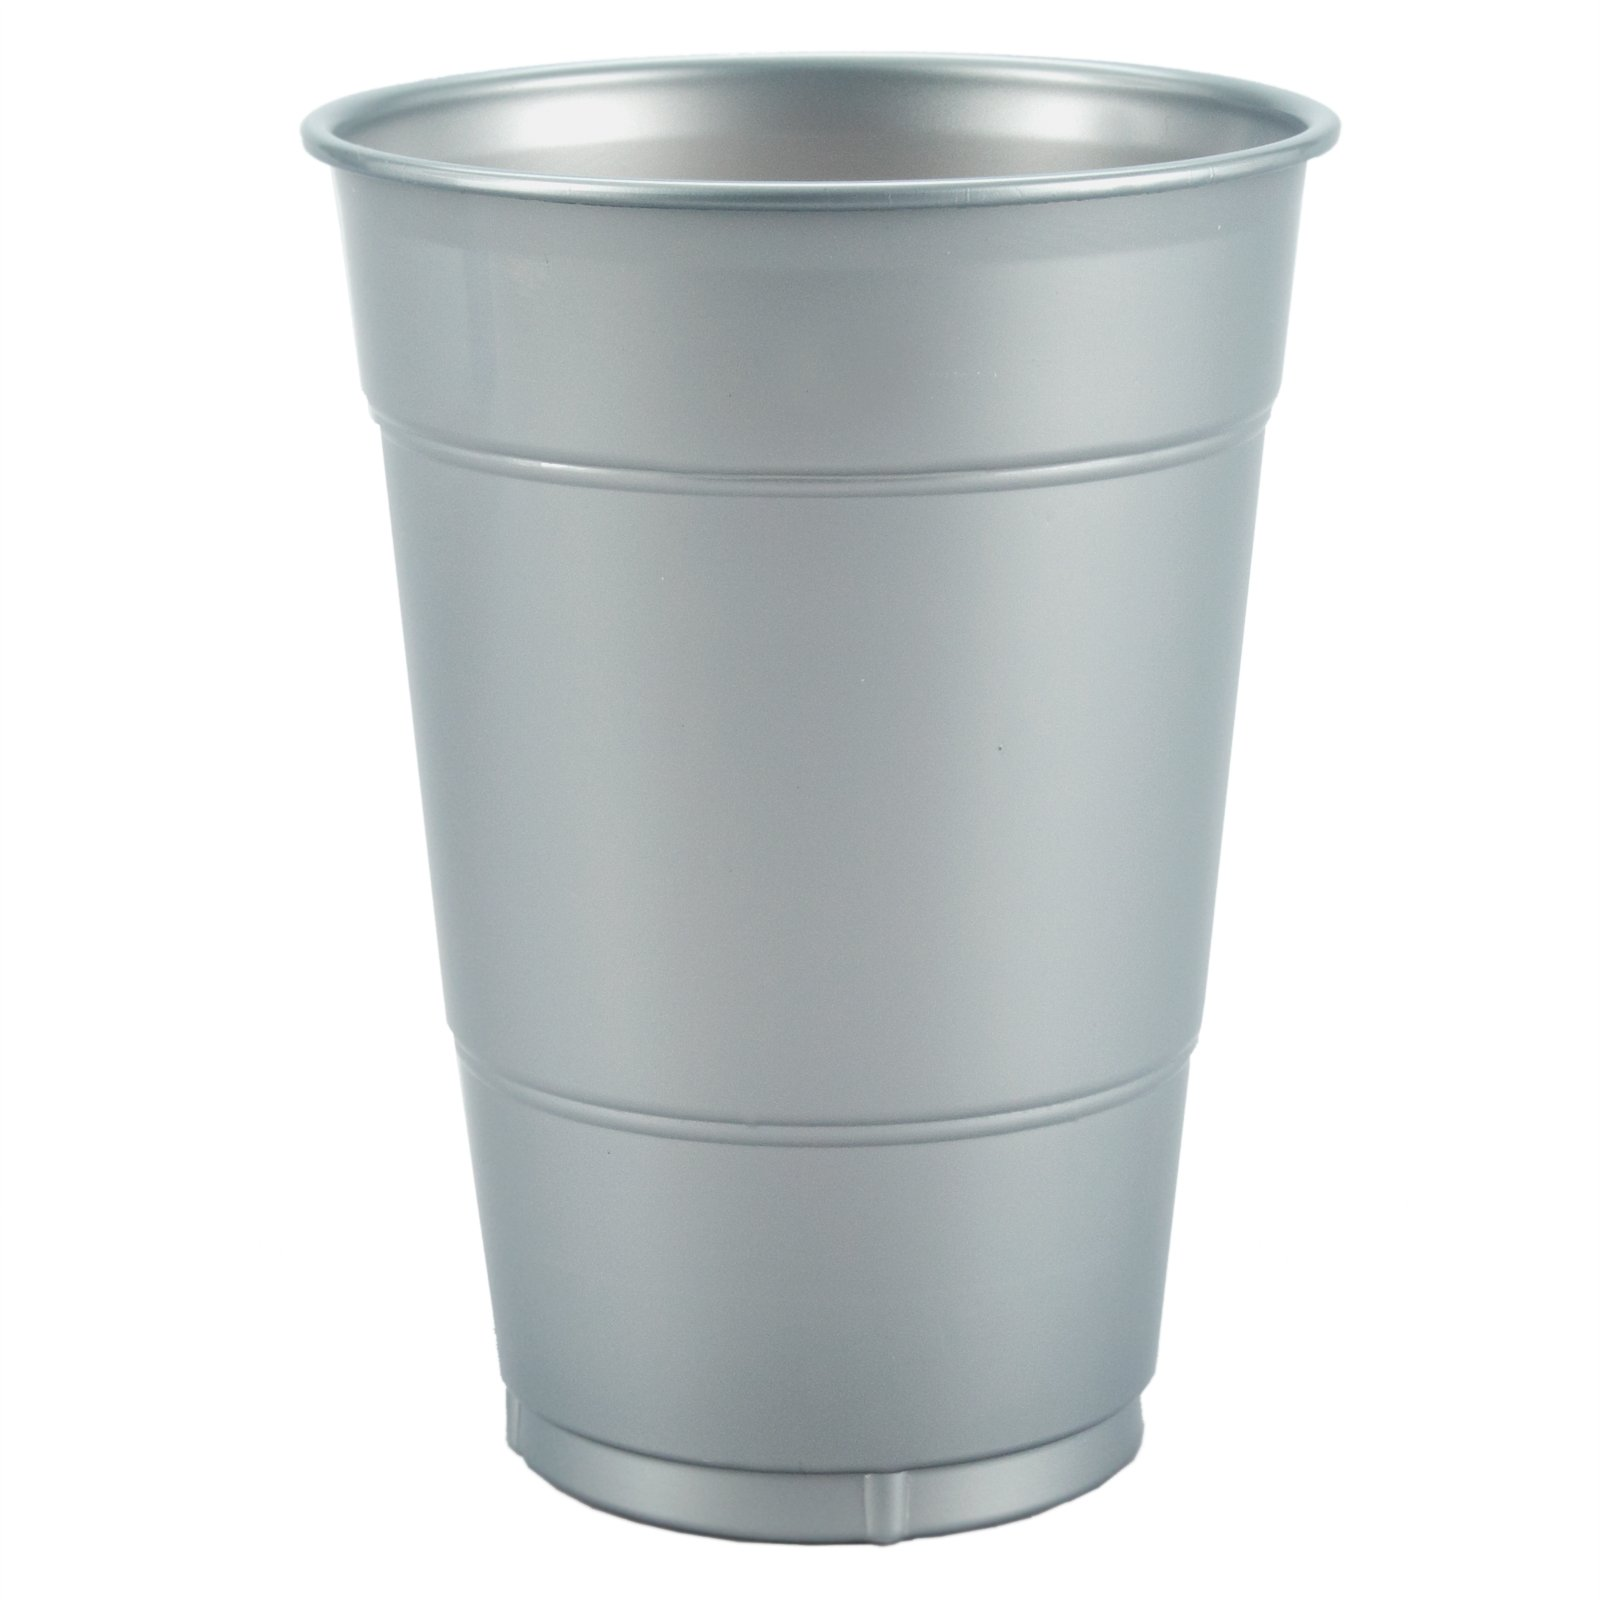 Silver 16 oz. Plastic Cups (20 count)